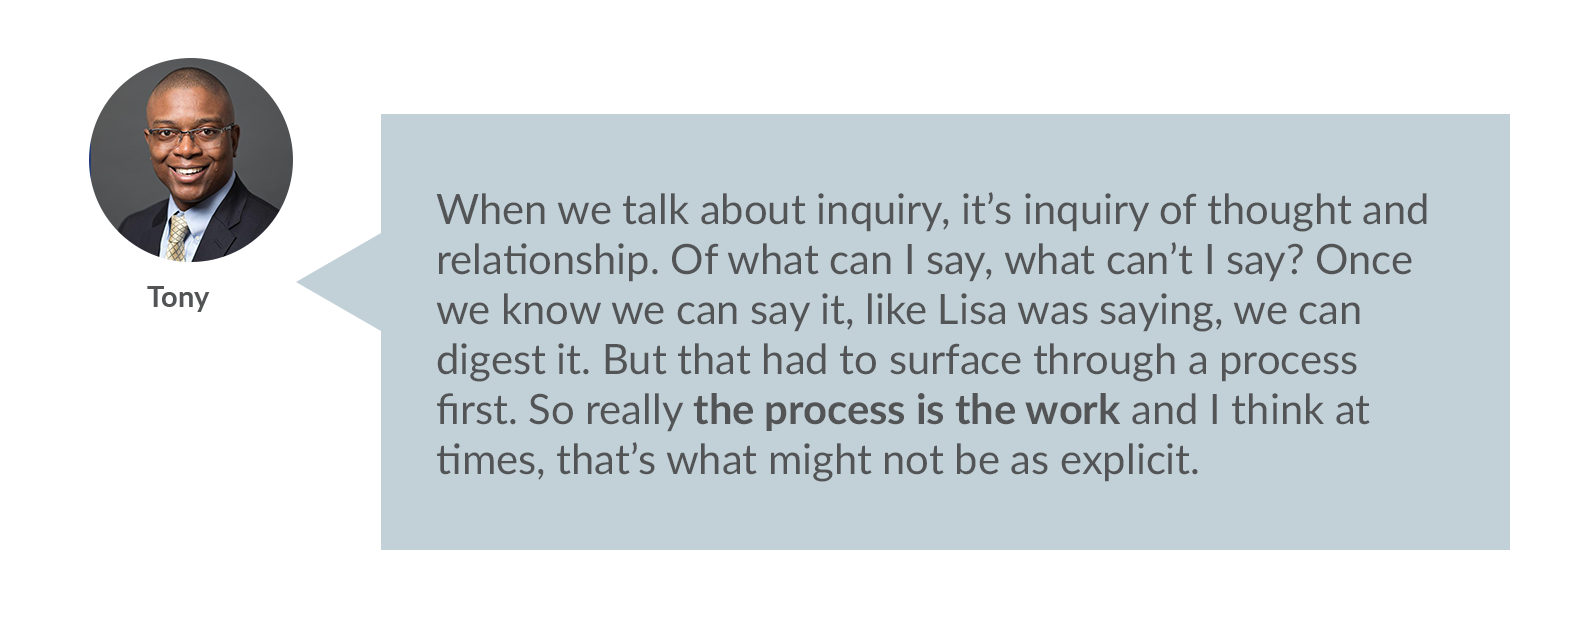 Tony: When we talk about inquiry, it's inquiry of thought and relationship. Of what can I say, what can't I say? Once we know we can say it, like Lisa was saying, we can digest it. But that had to surface through a process first. So really the process is the work and I think at times, that's what might not be as explicit.